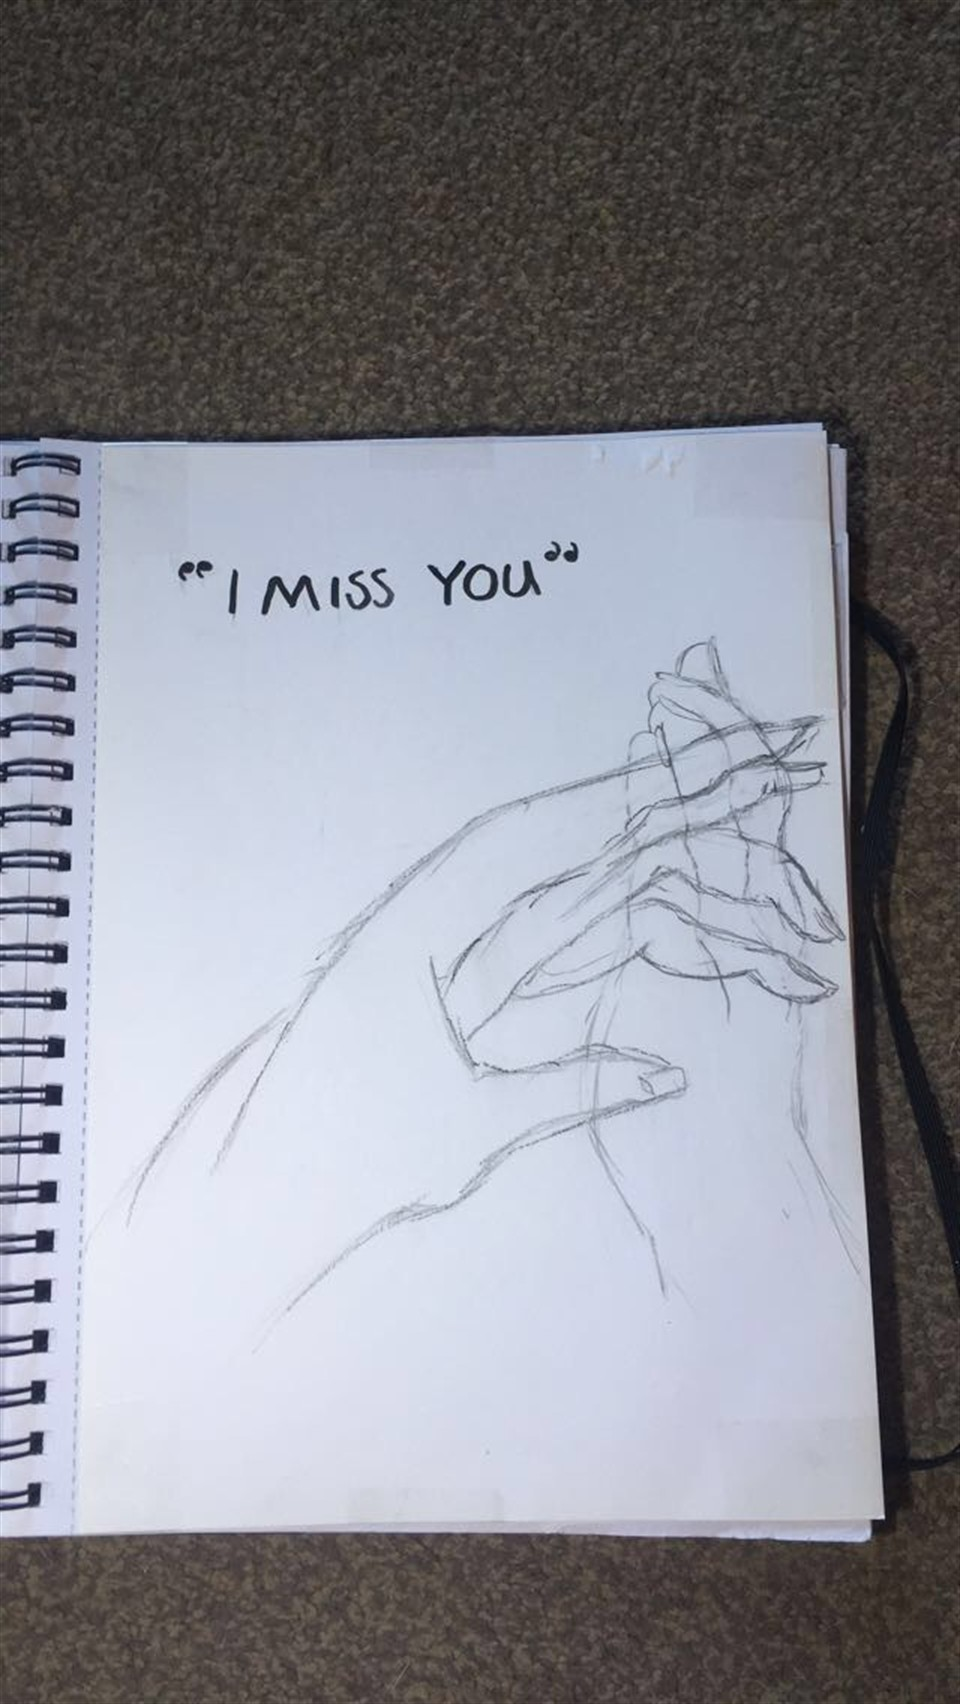 960x1704 i miss you by louise barton miss you sketch